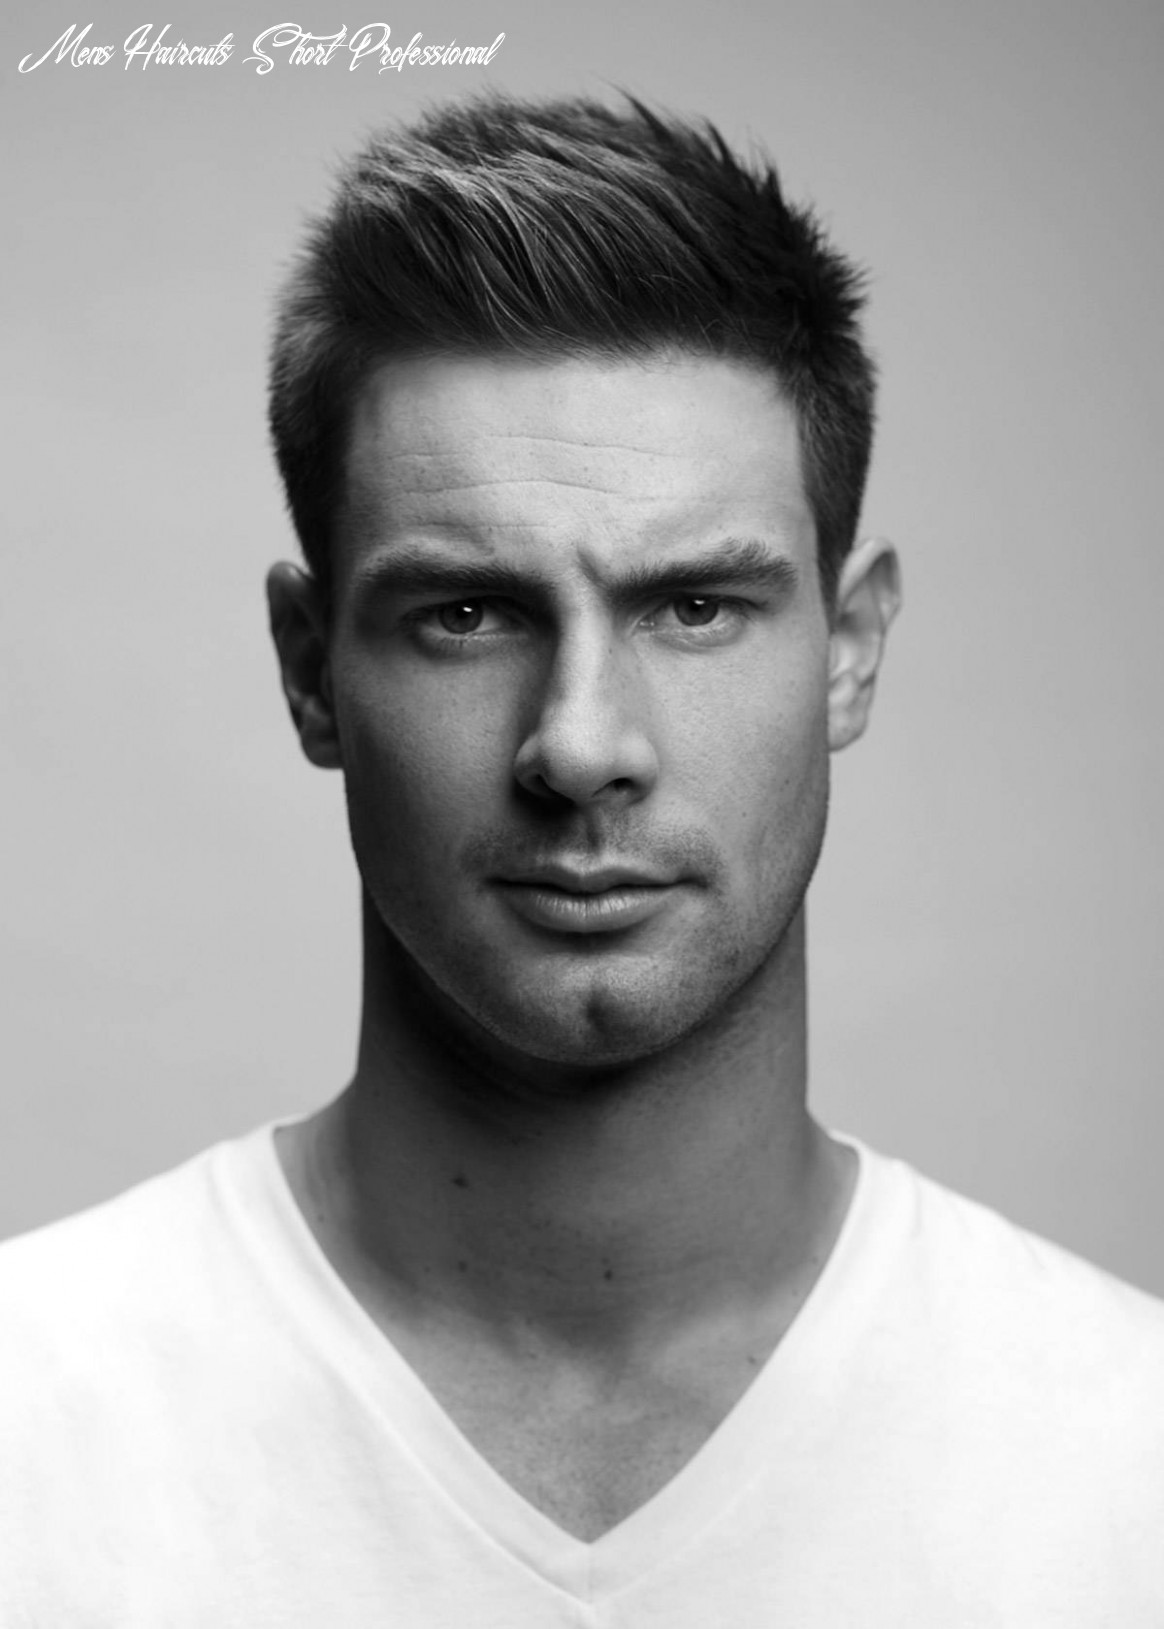 8 best stylish short hairstyles for men [with photos & tips] mens haircuts short professional